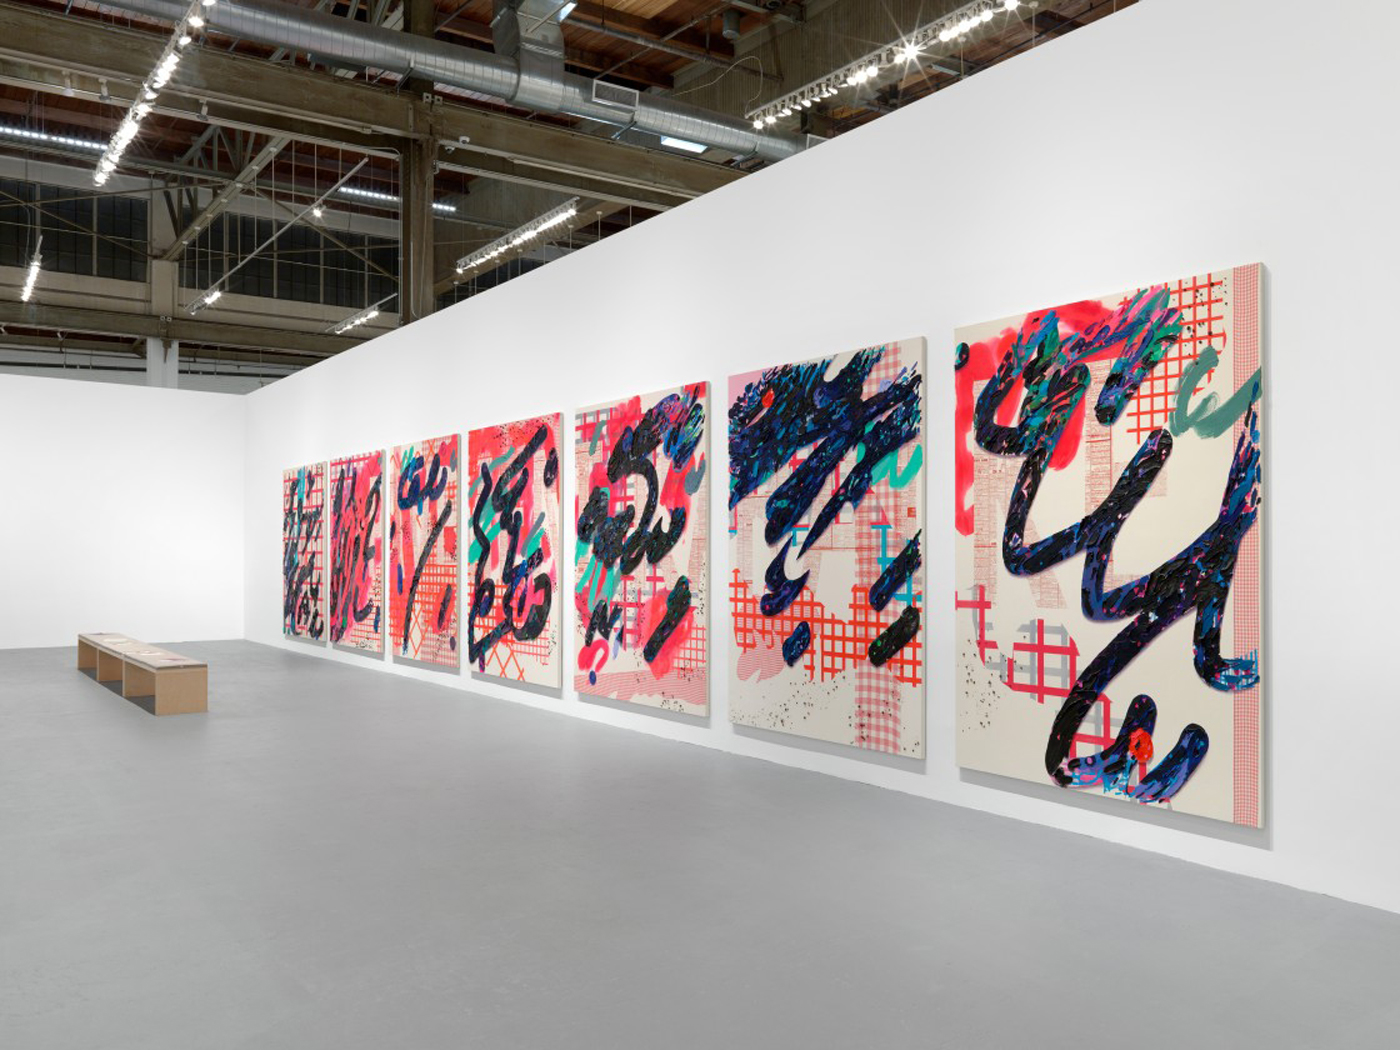 Laura Owens, art exhibit @ The Geffen Contemporary at MOCA // photo source: moca.org